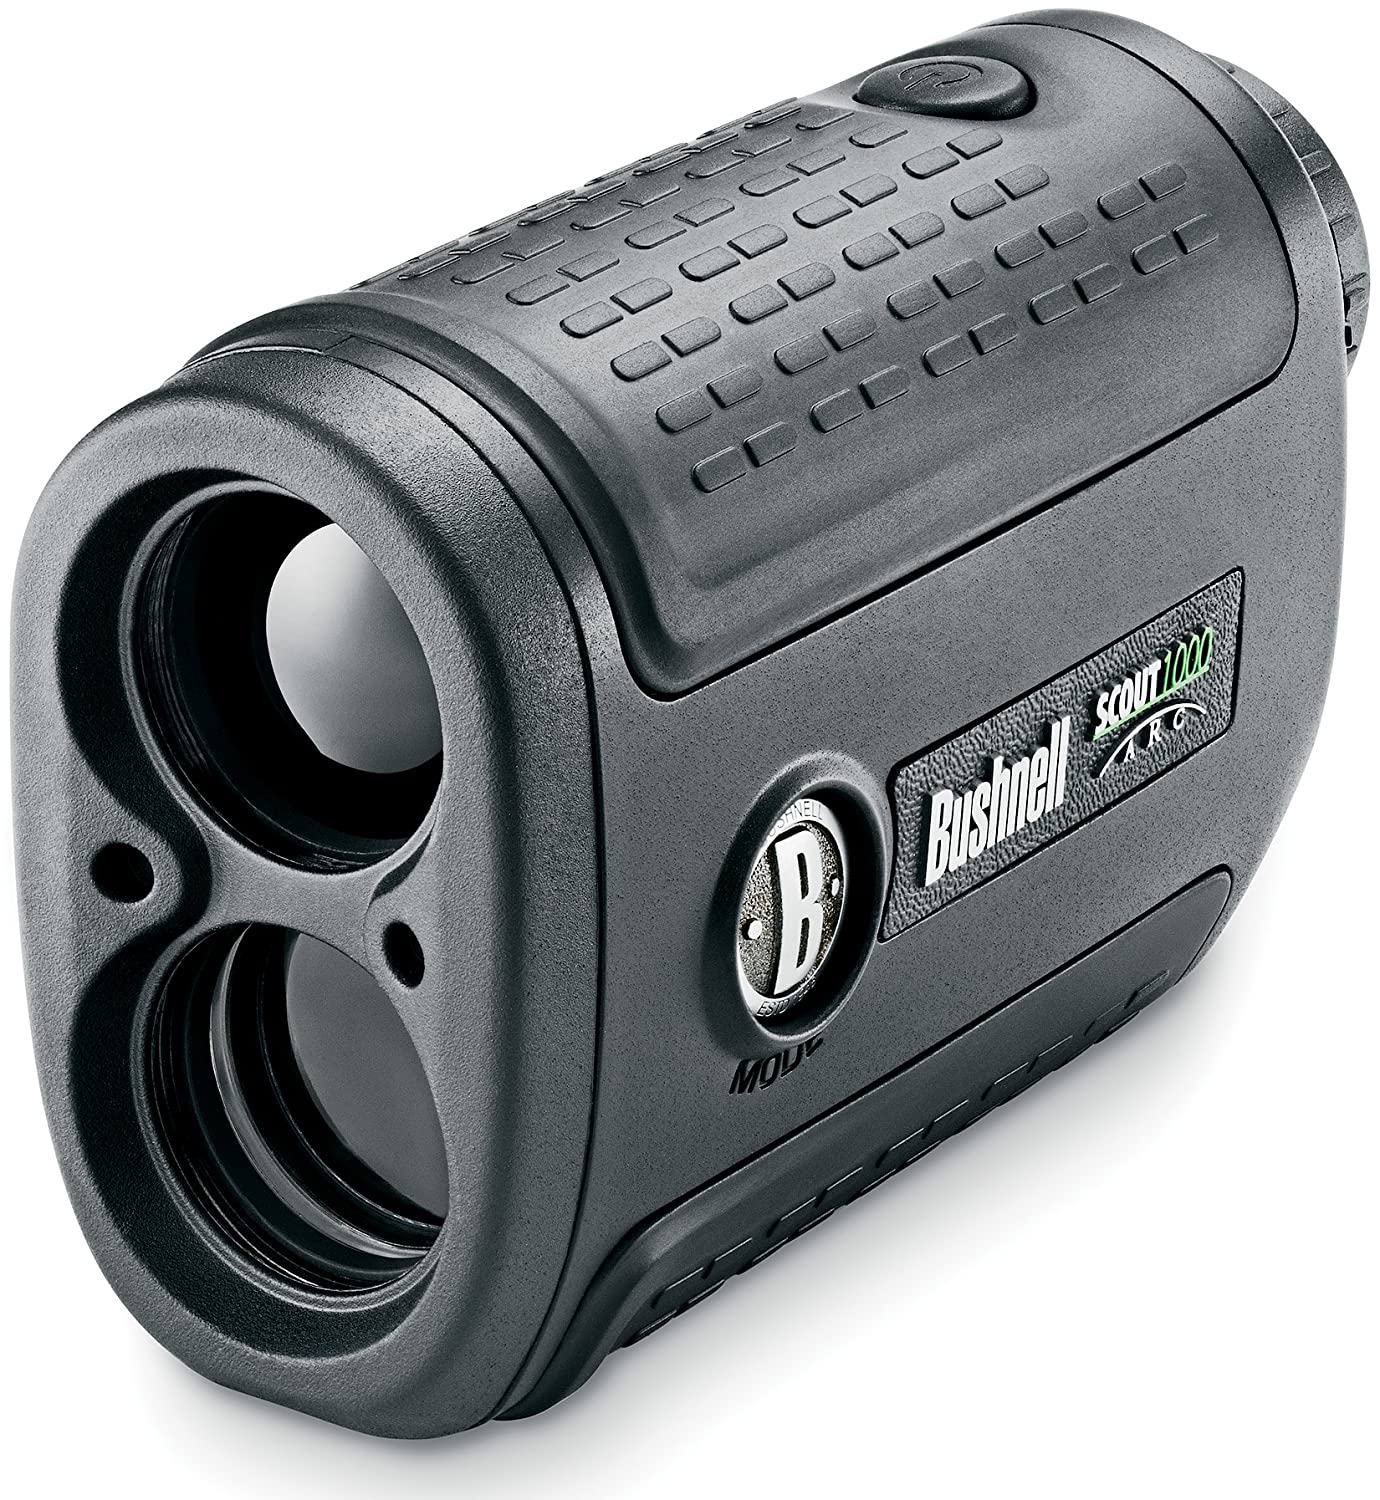 Bushnell-Scout-1000-ARC-Laser-Range-Finder-compare-bushnell